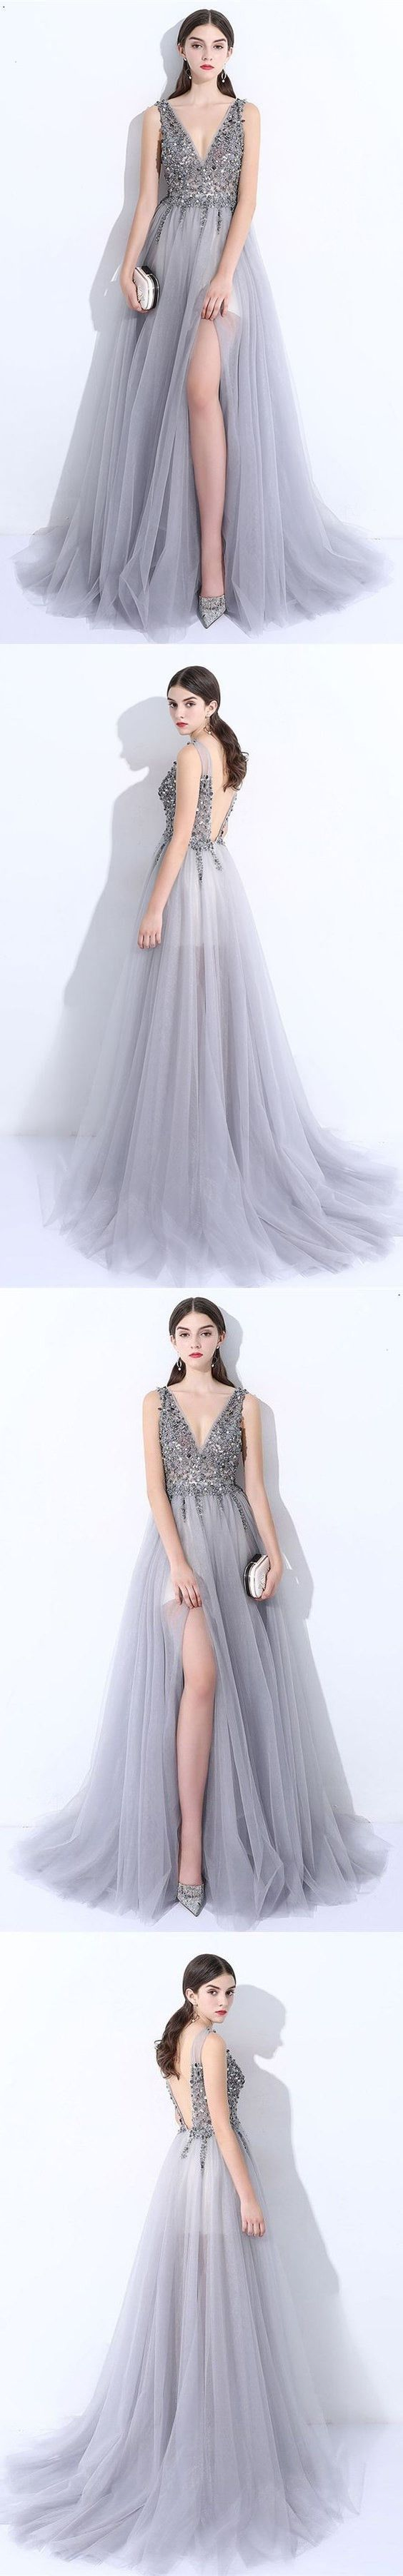 Long Prom Dresses Sexy, Princess Party Dresses V-neck, Backless Formal Dresses 2018 Modest, Tulle Evening Gowns Beading M1454#prom #promdress #promdresses #longpromdress #promgowns #promgown #2018style #newfashion #newstyles #2018newprom #eveninggown #vneckline #greypromdress #backless #tulle #beading